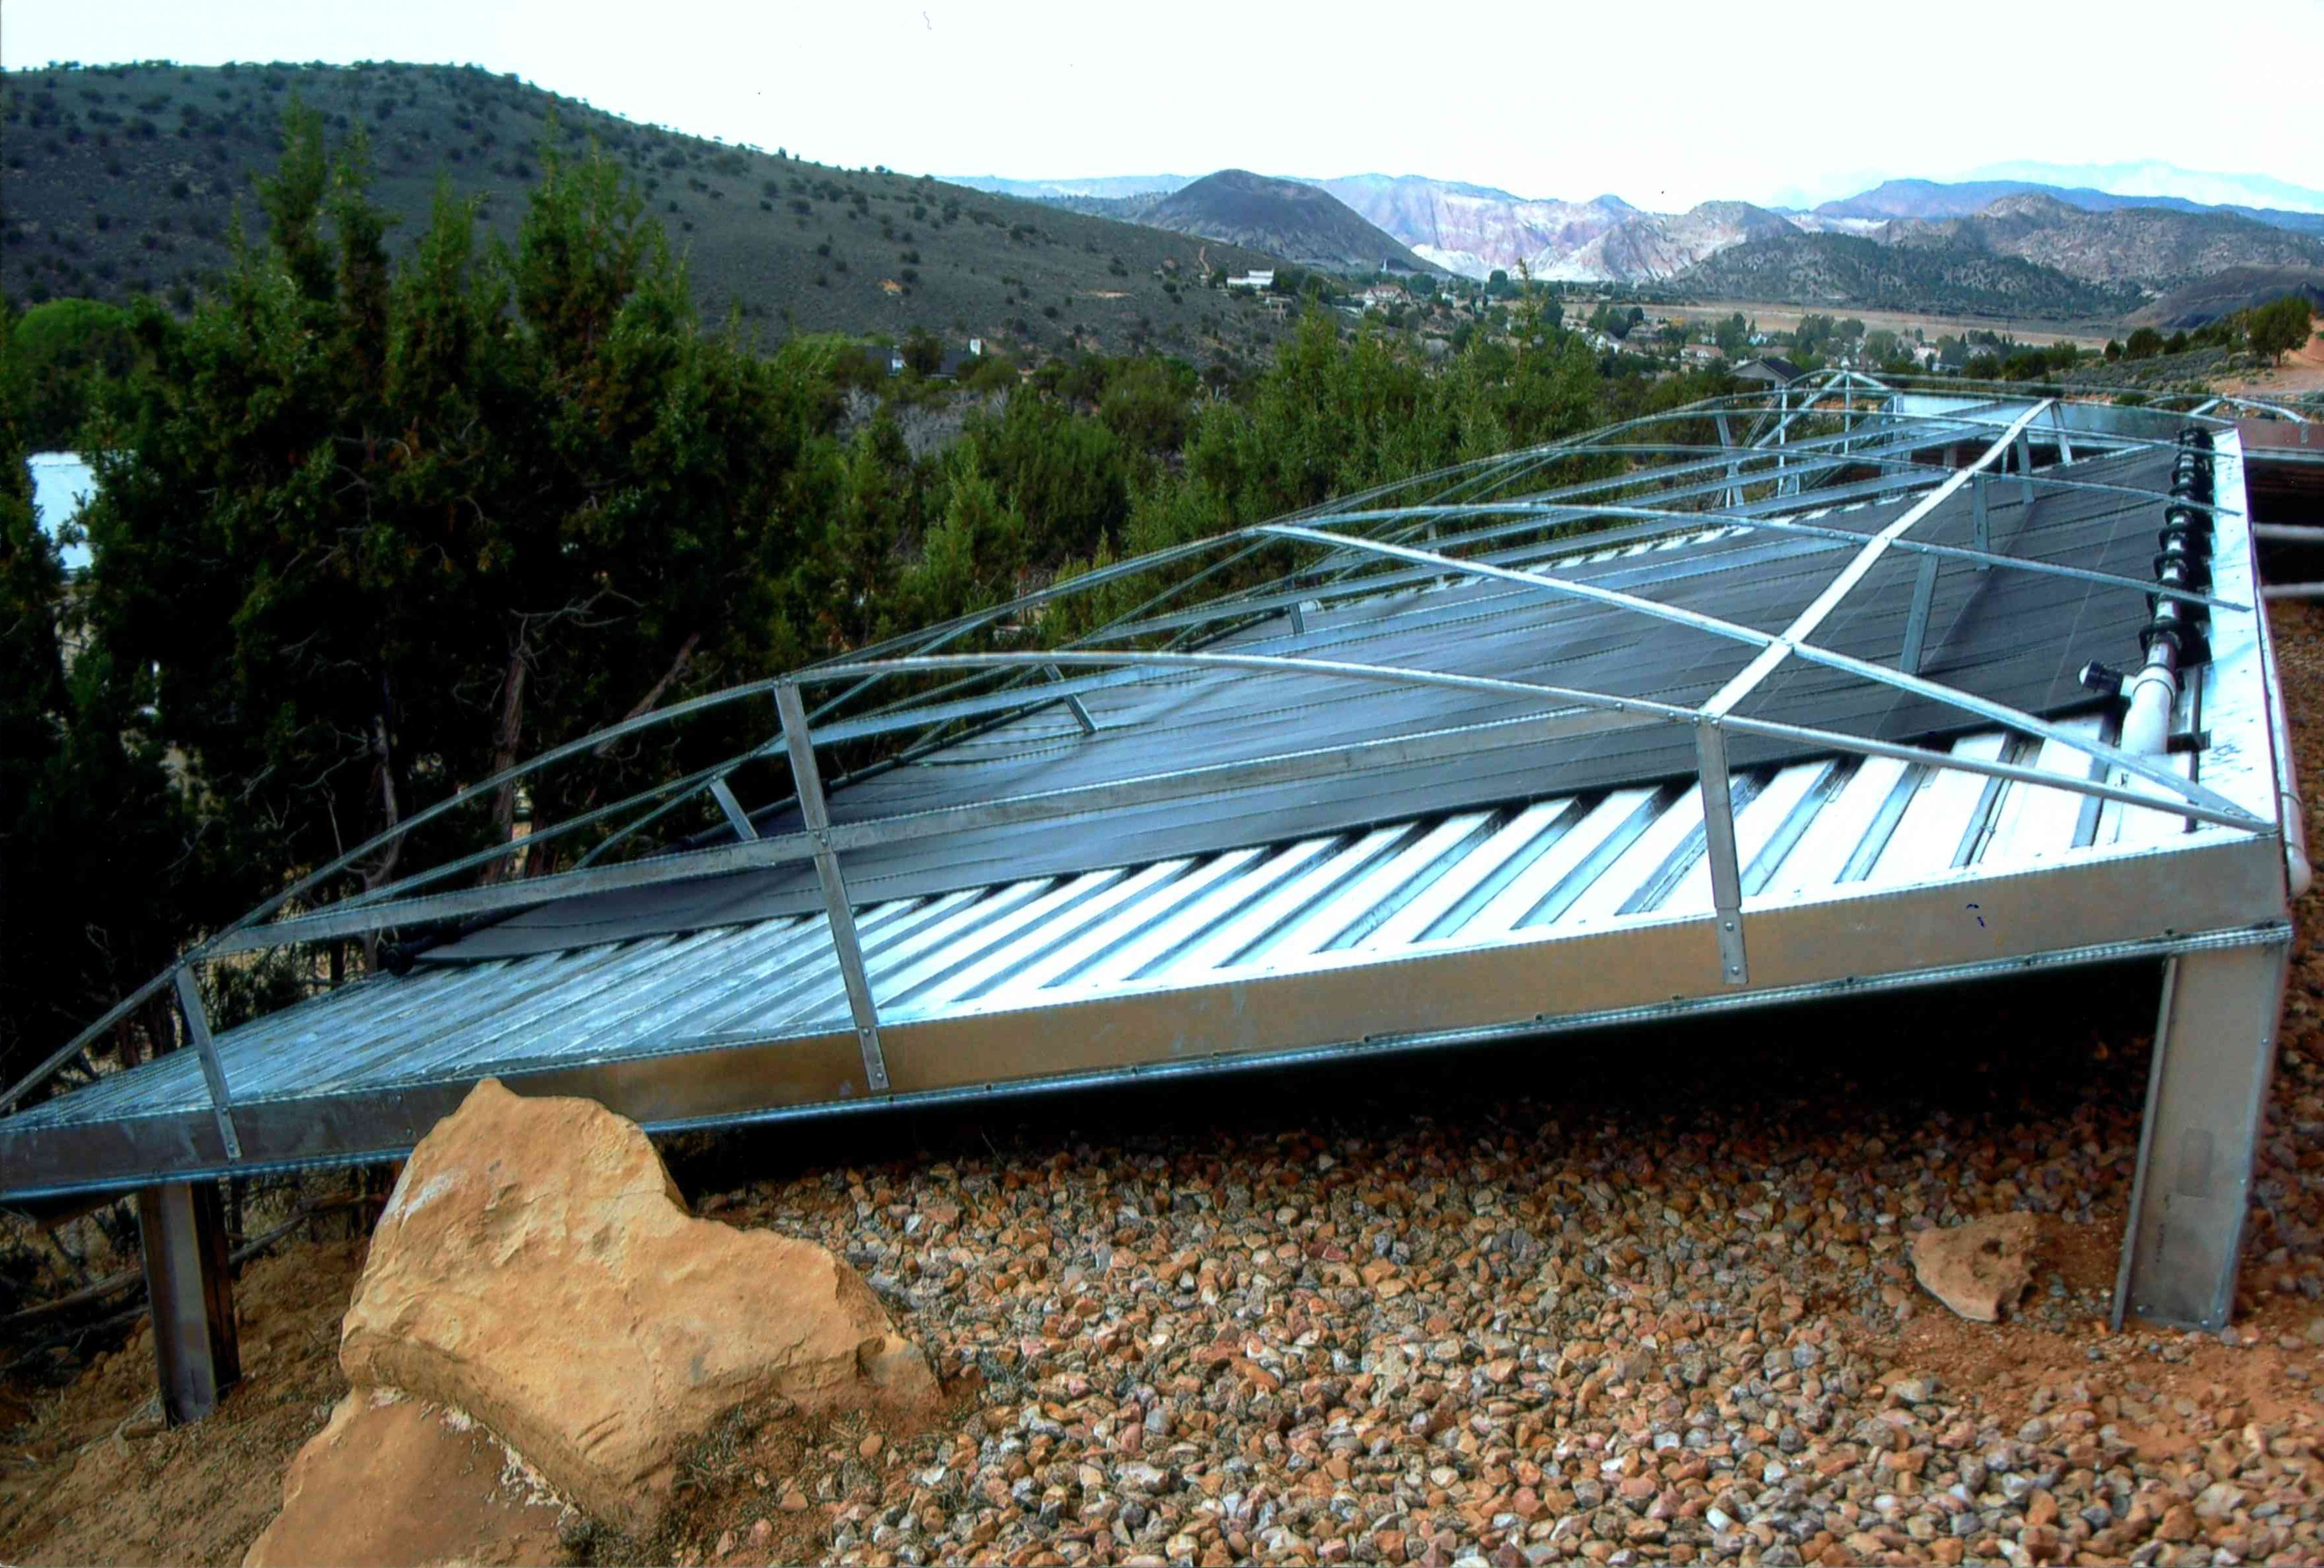 Photo galleries - Mountain - Solar Pool Heating Installtion